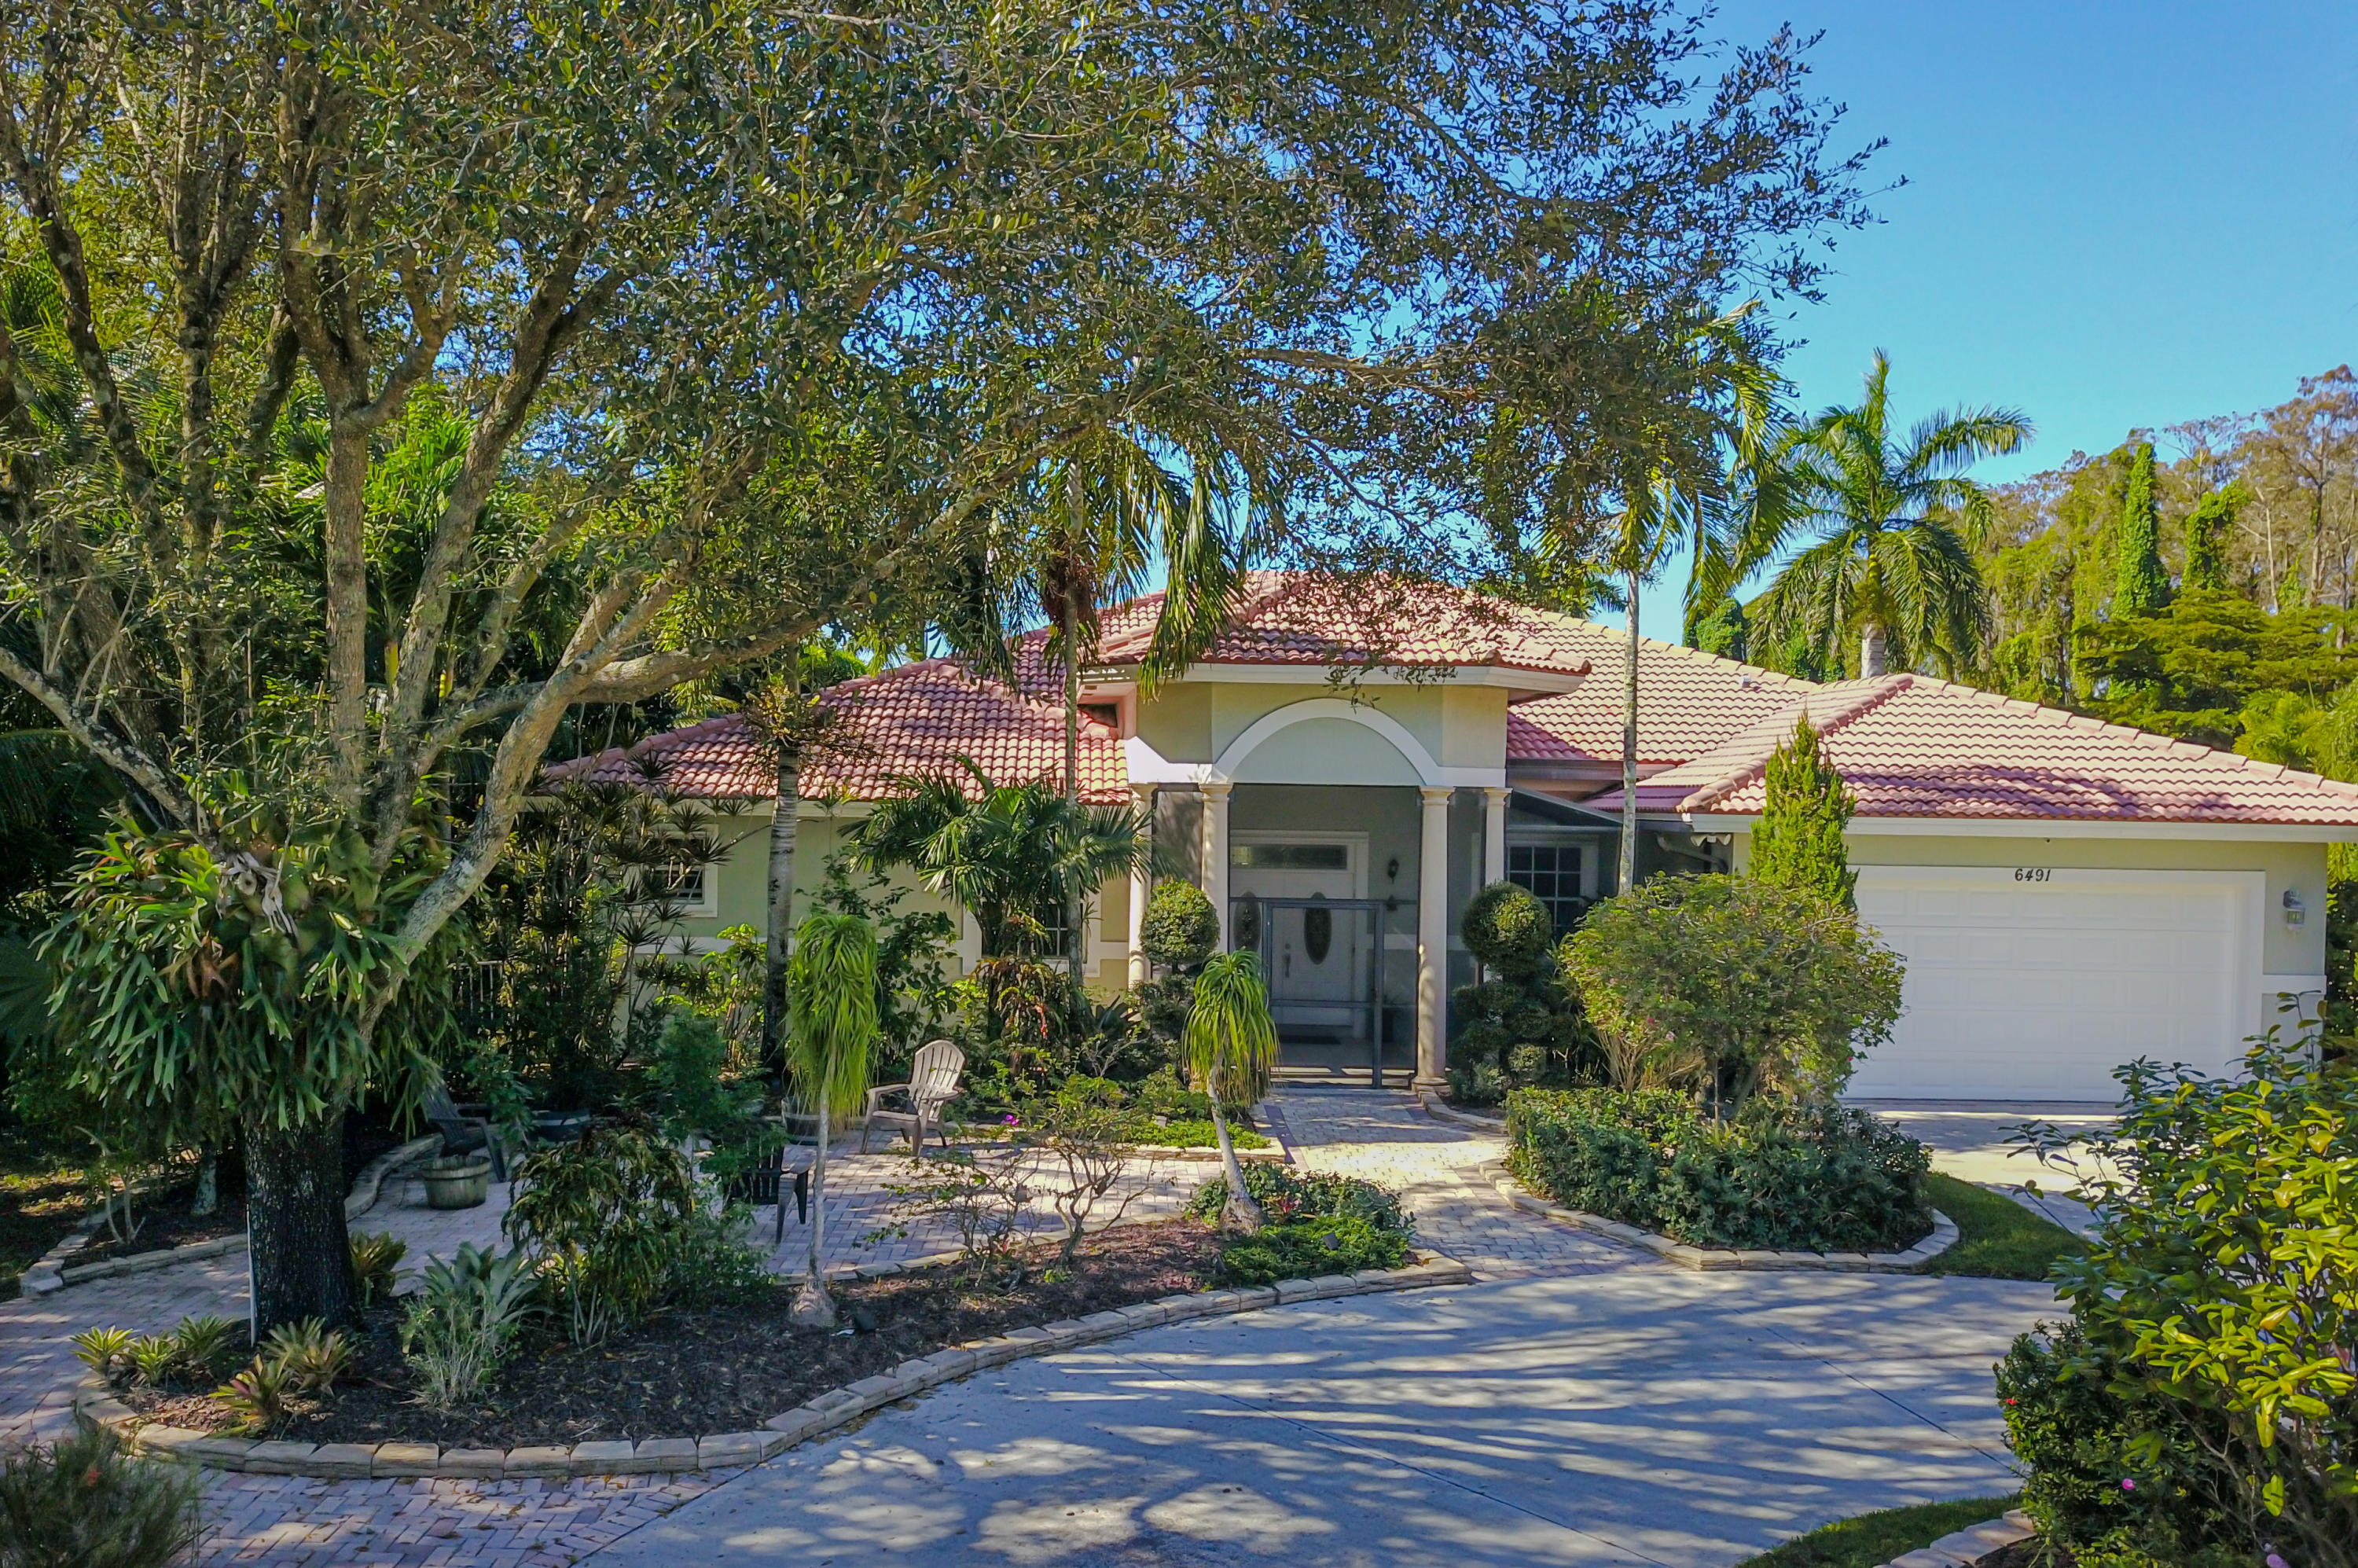 Home for sale in Heritage Farms Lake Worth Florida